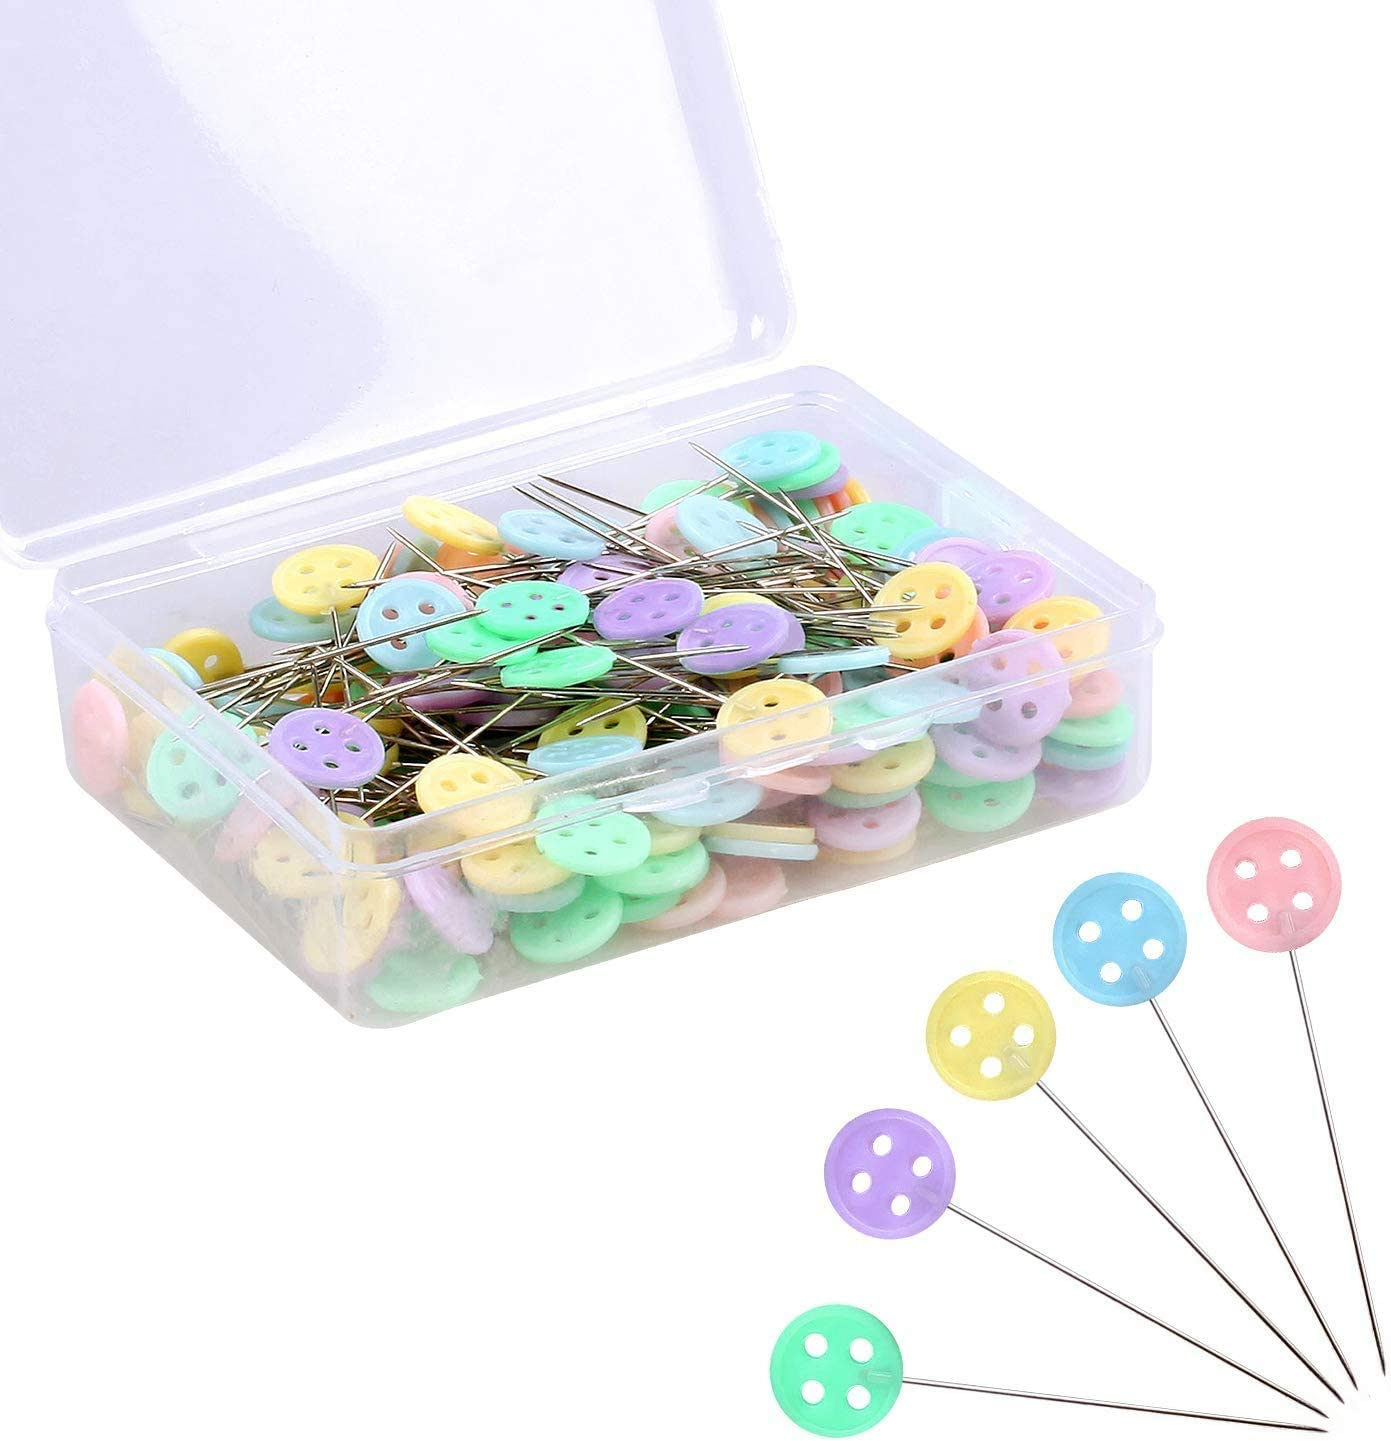 Sewing Pins Sewing Pins for Fabric DIY Sewing Pins Crafts 200 PCS Straight Pins 1.6 in Pearlized Ball Head Pins